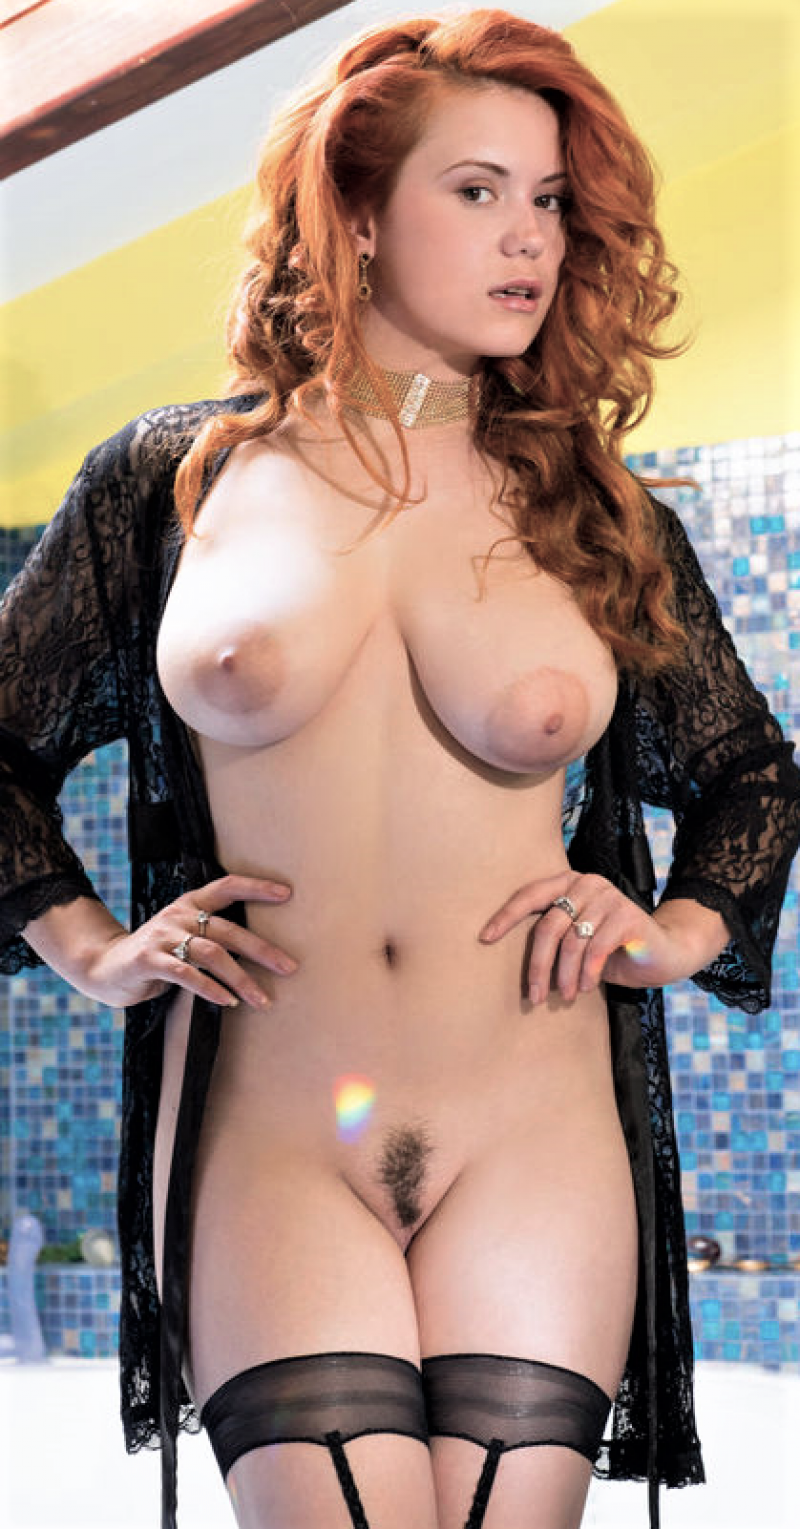 redhead girl rides on the sybian